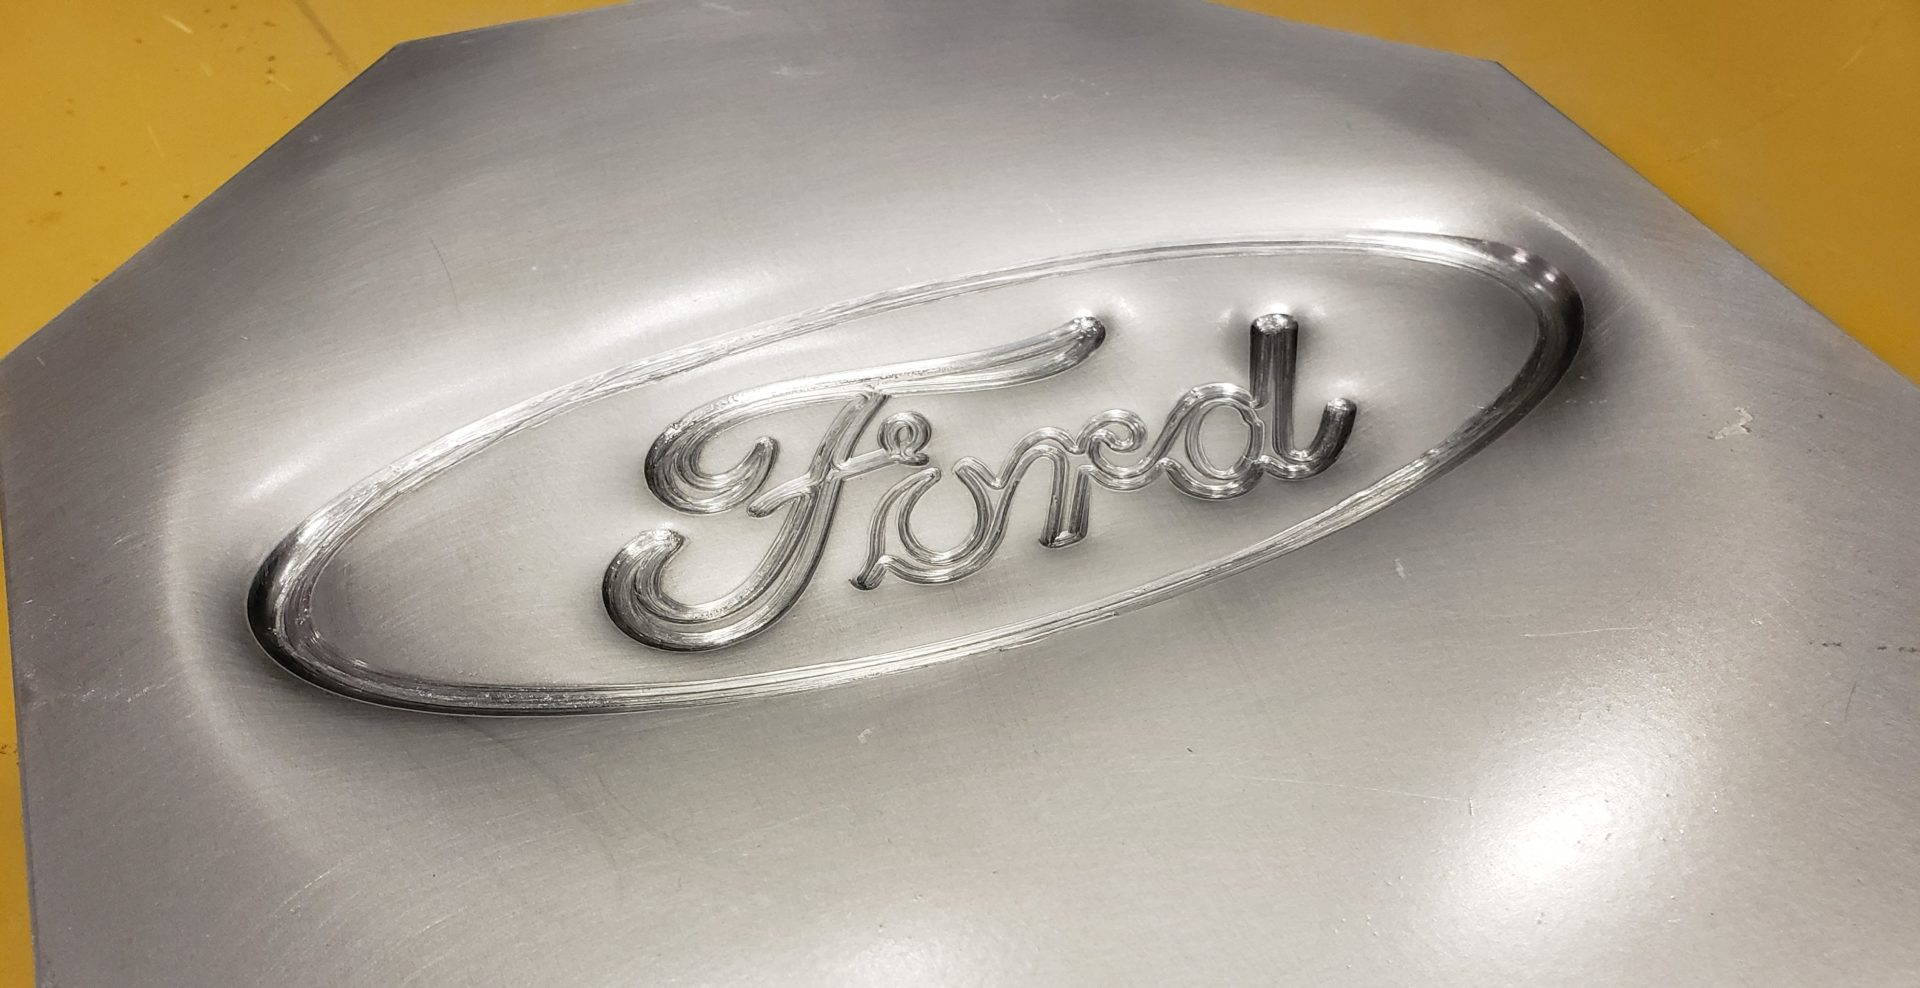 Incrementally formed Ford logo